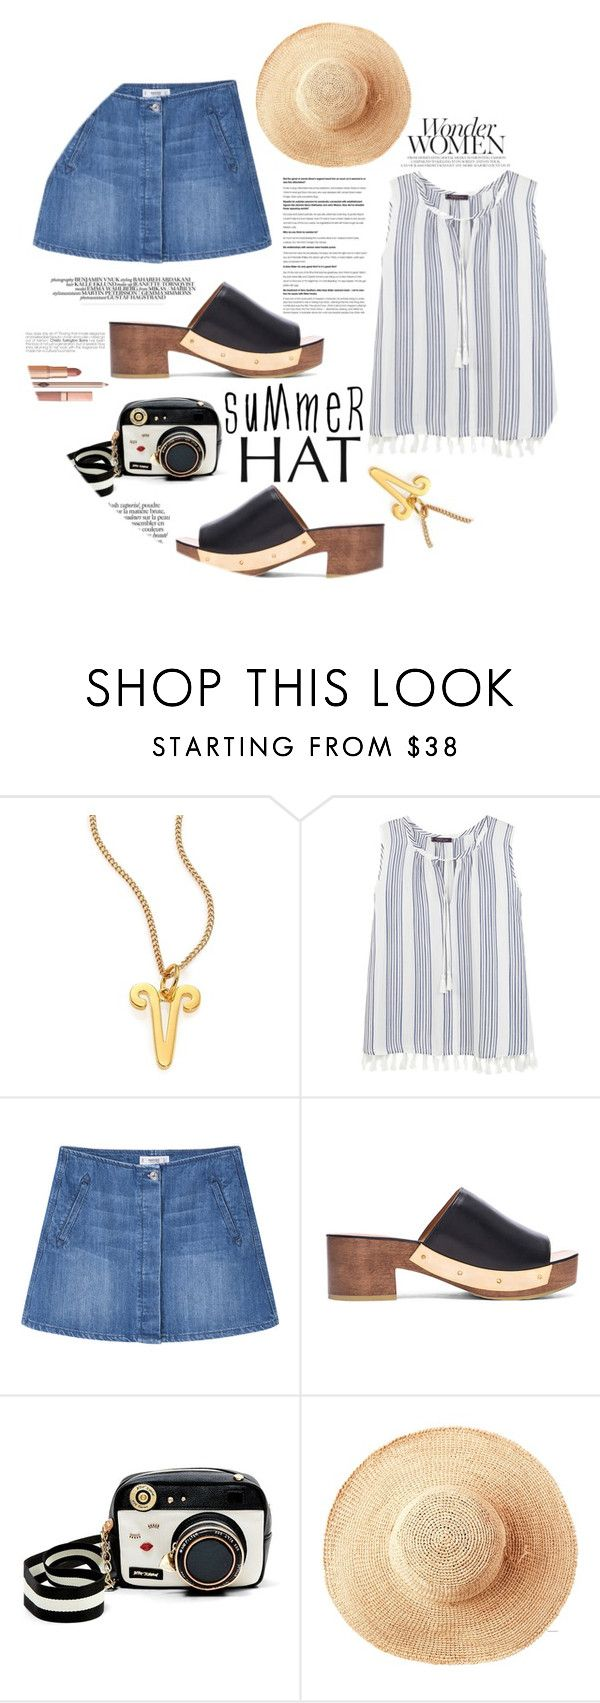 """Untitled #293"" by natalie1523 ❤ liked on Polyvore featuring Chloé, Violeta by Mango, MANGO, Rosetta Getty, Betsey Johnson, Toast, Dolce Vita and summerhat"